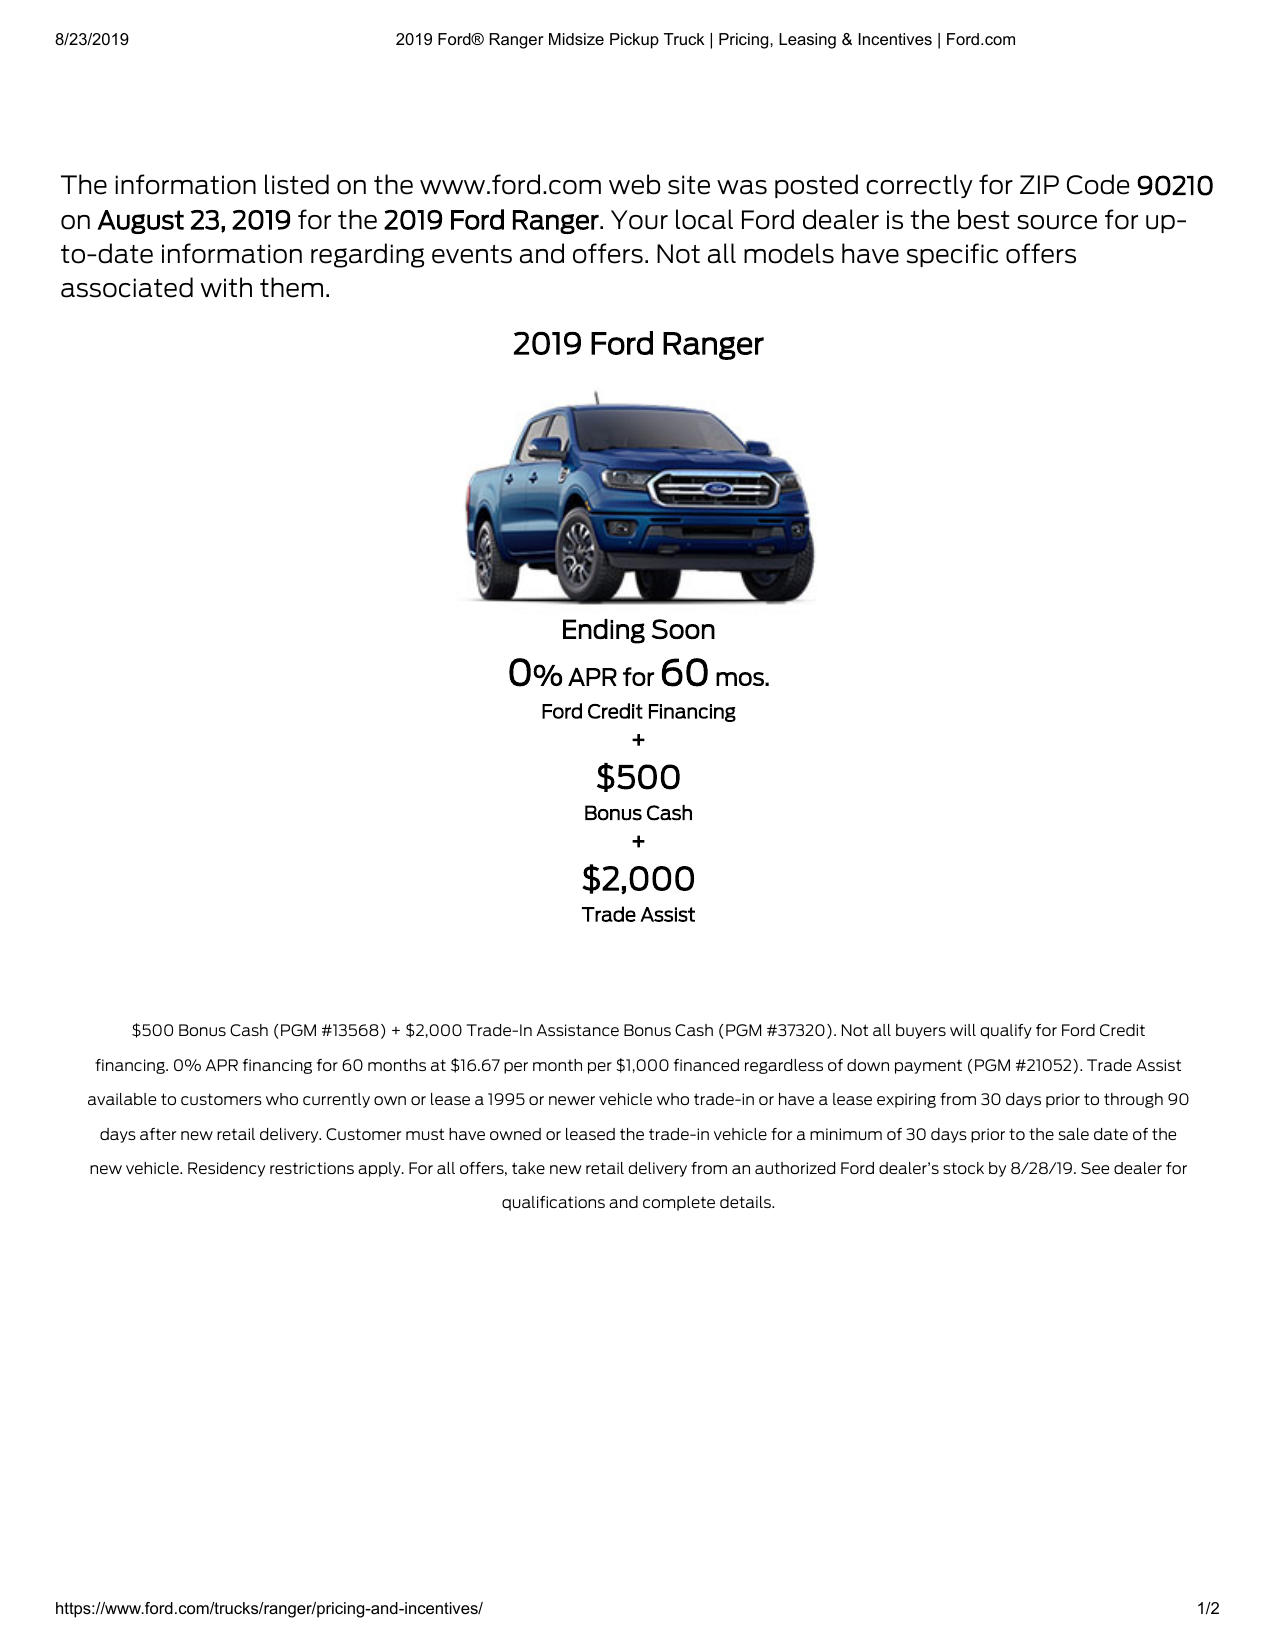 2019 Ford® Ranger Midsize Pickup Truck _ Pricing, Leasing & Incentives _ Ford.com-2.png